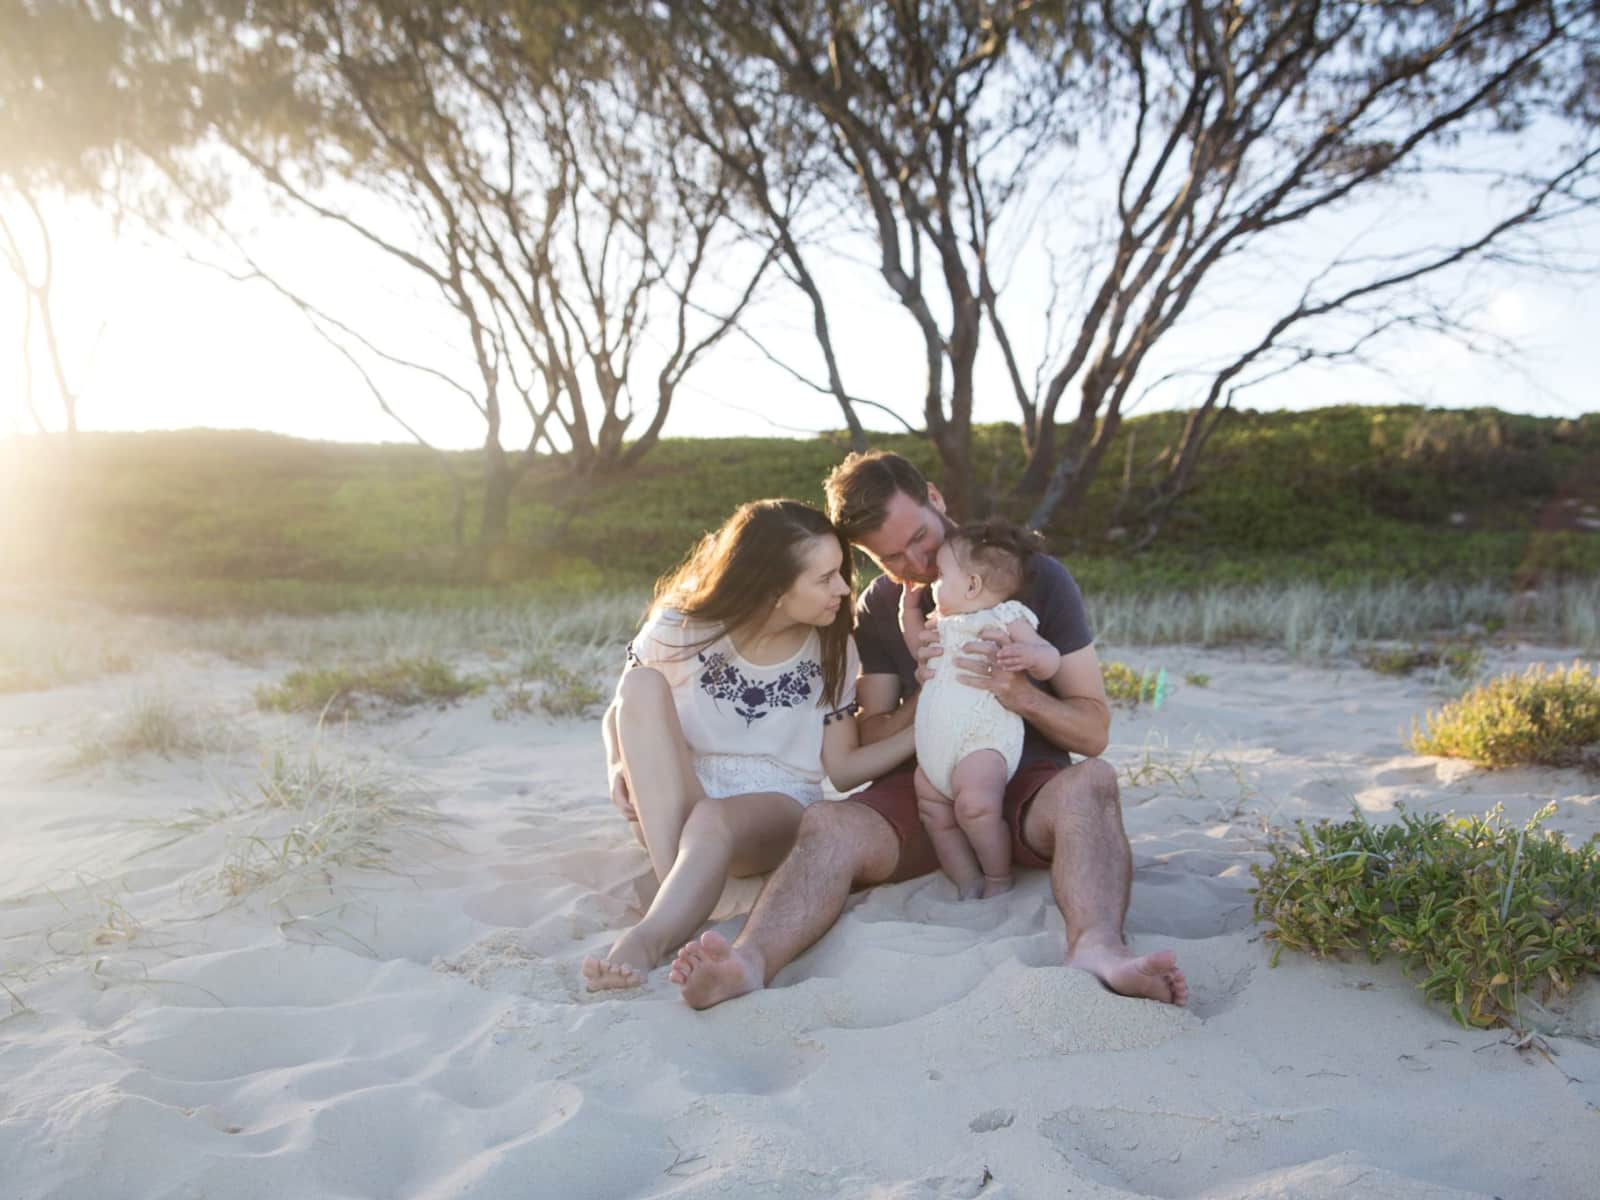 Sophie & James from Wingham, New South Wales, Australia